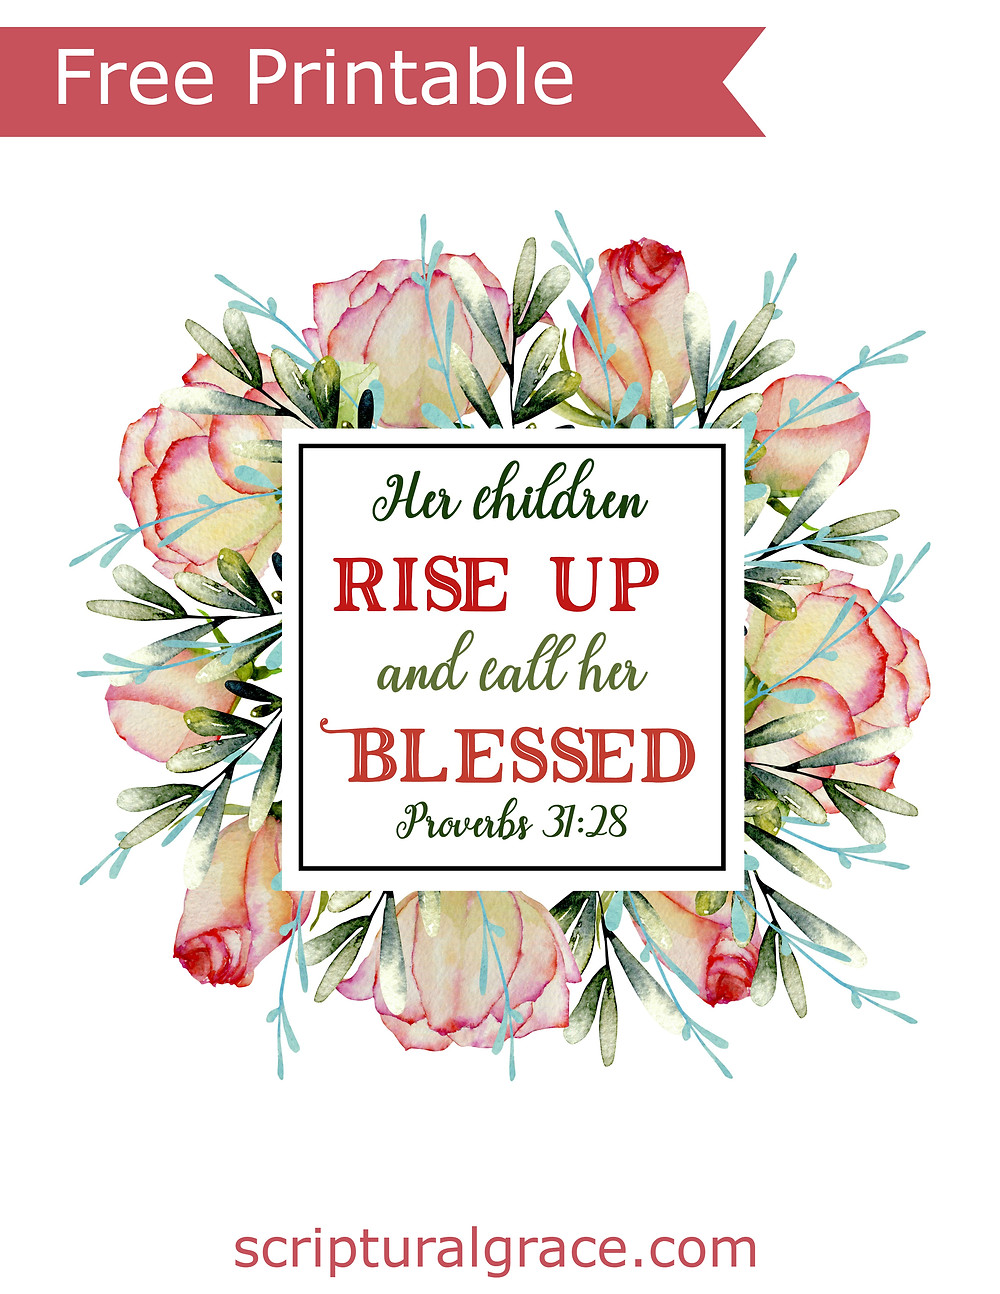 Free printable floral print of Proverbs 31:28